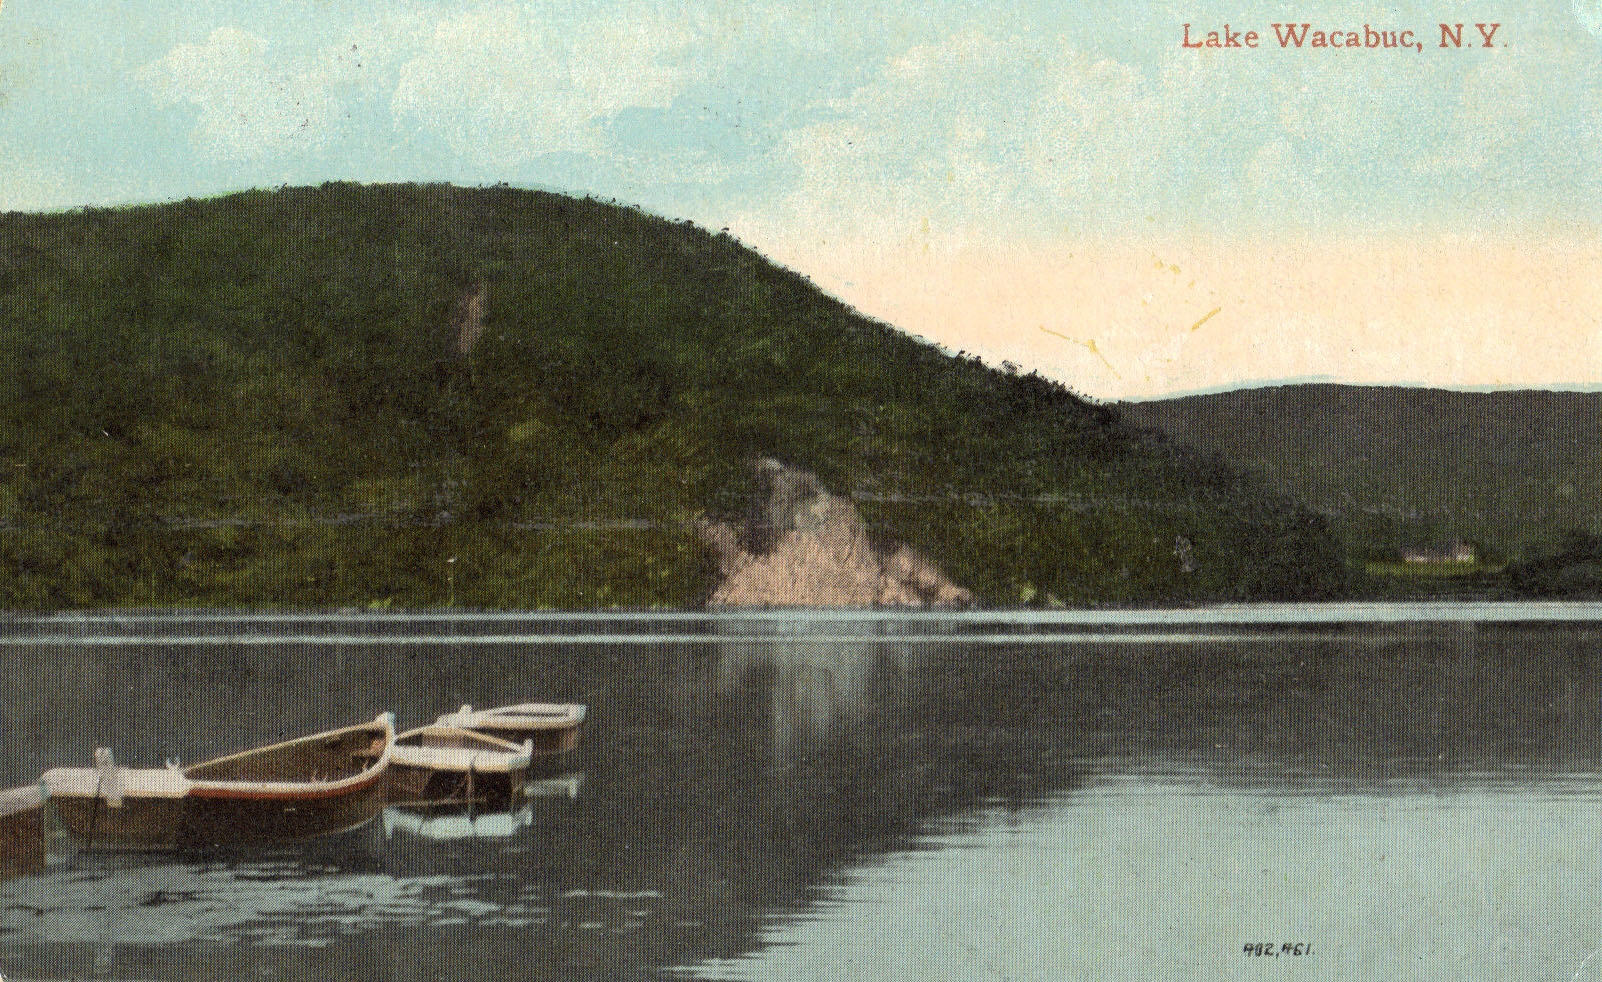 A postcard from 1908